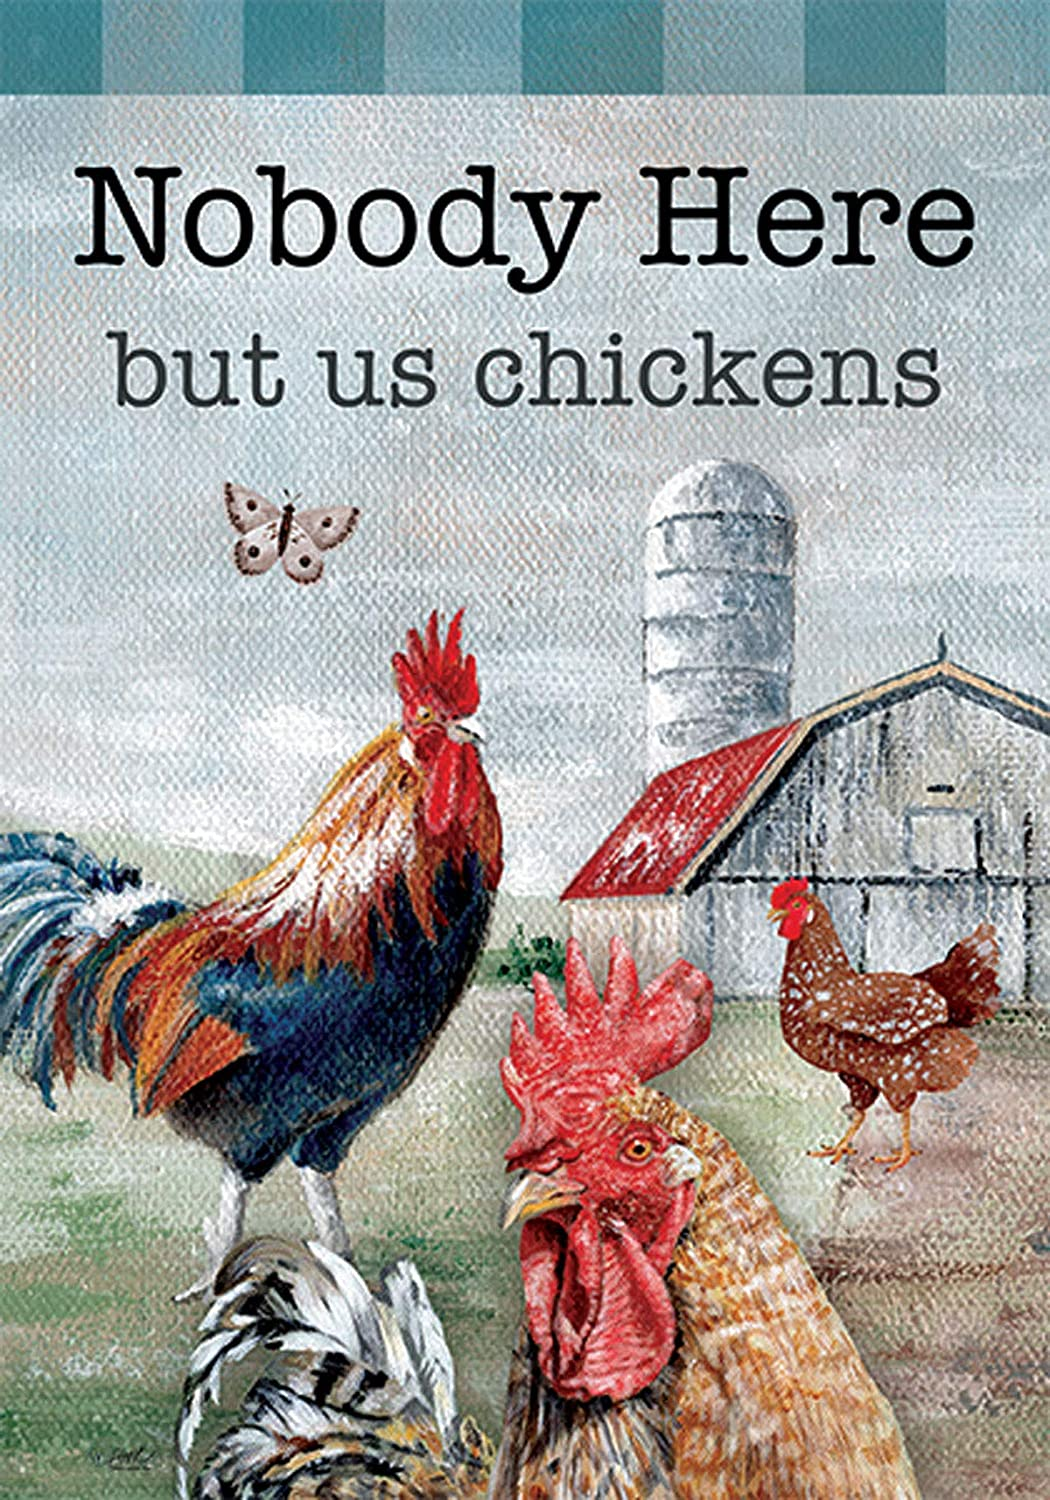 Custom Decor Nobody Here But Us Chickens Farm - Standard Size, 28 x 40 Inch, Decorative Double Sided, Licensed and Copyrighted Flag, Printed in The USA